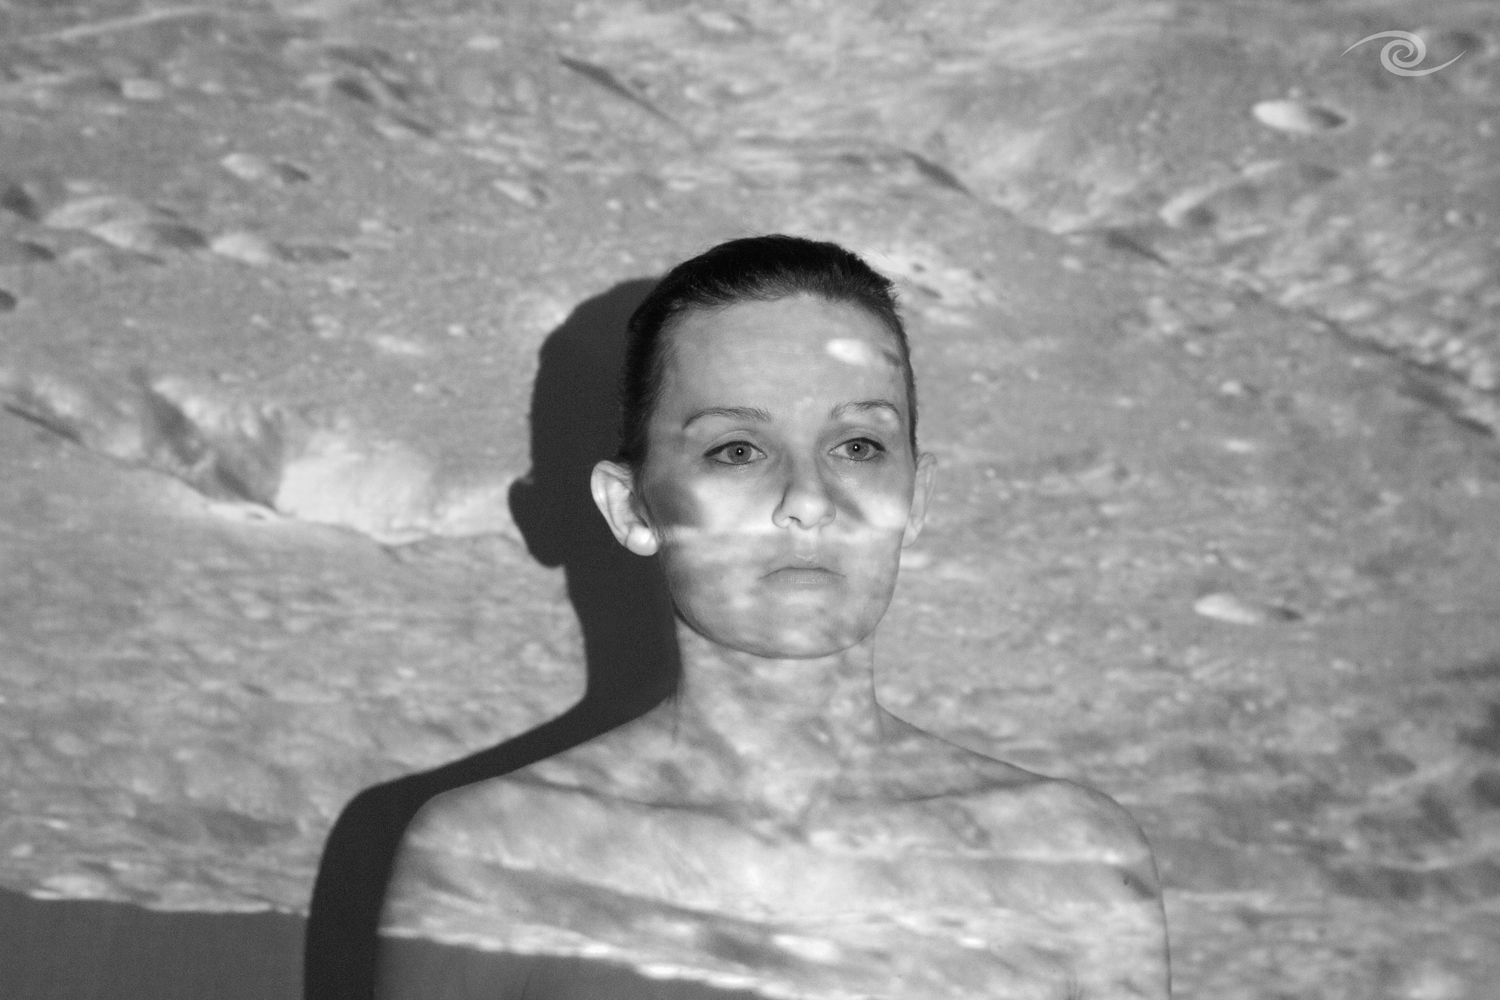 Marthe-on the moon-black and white artist photo